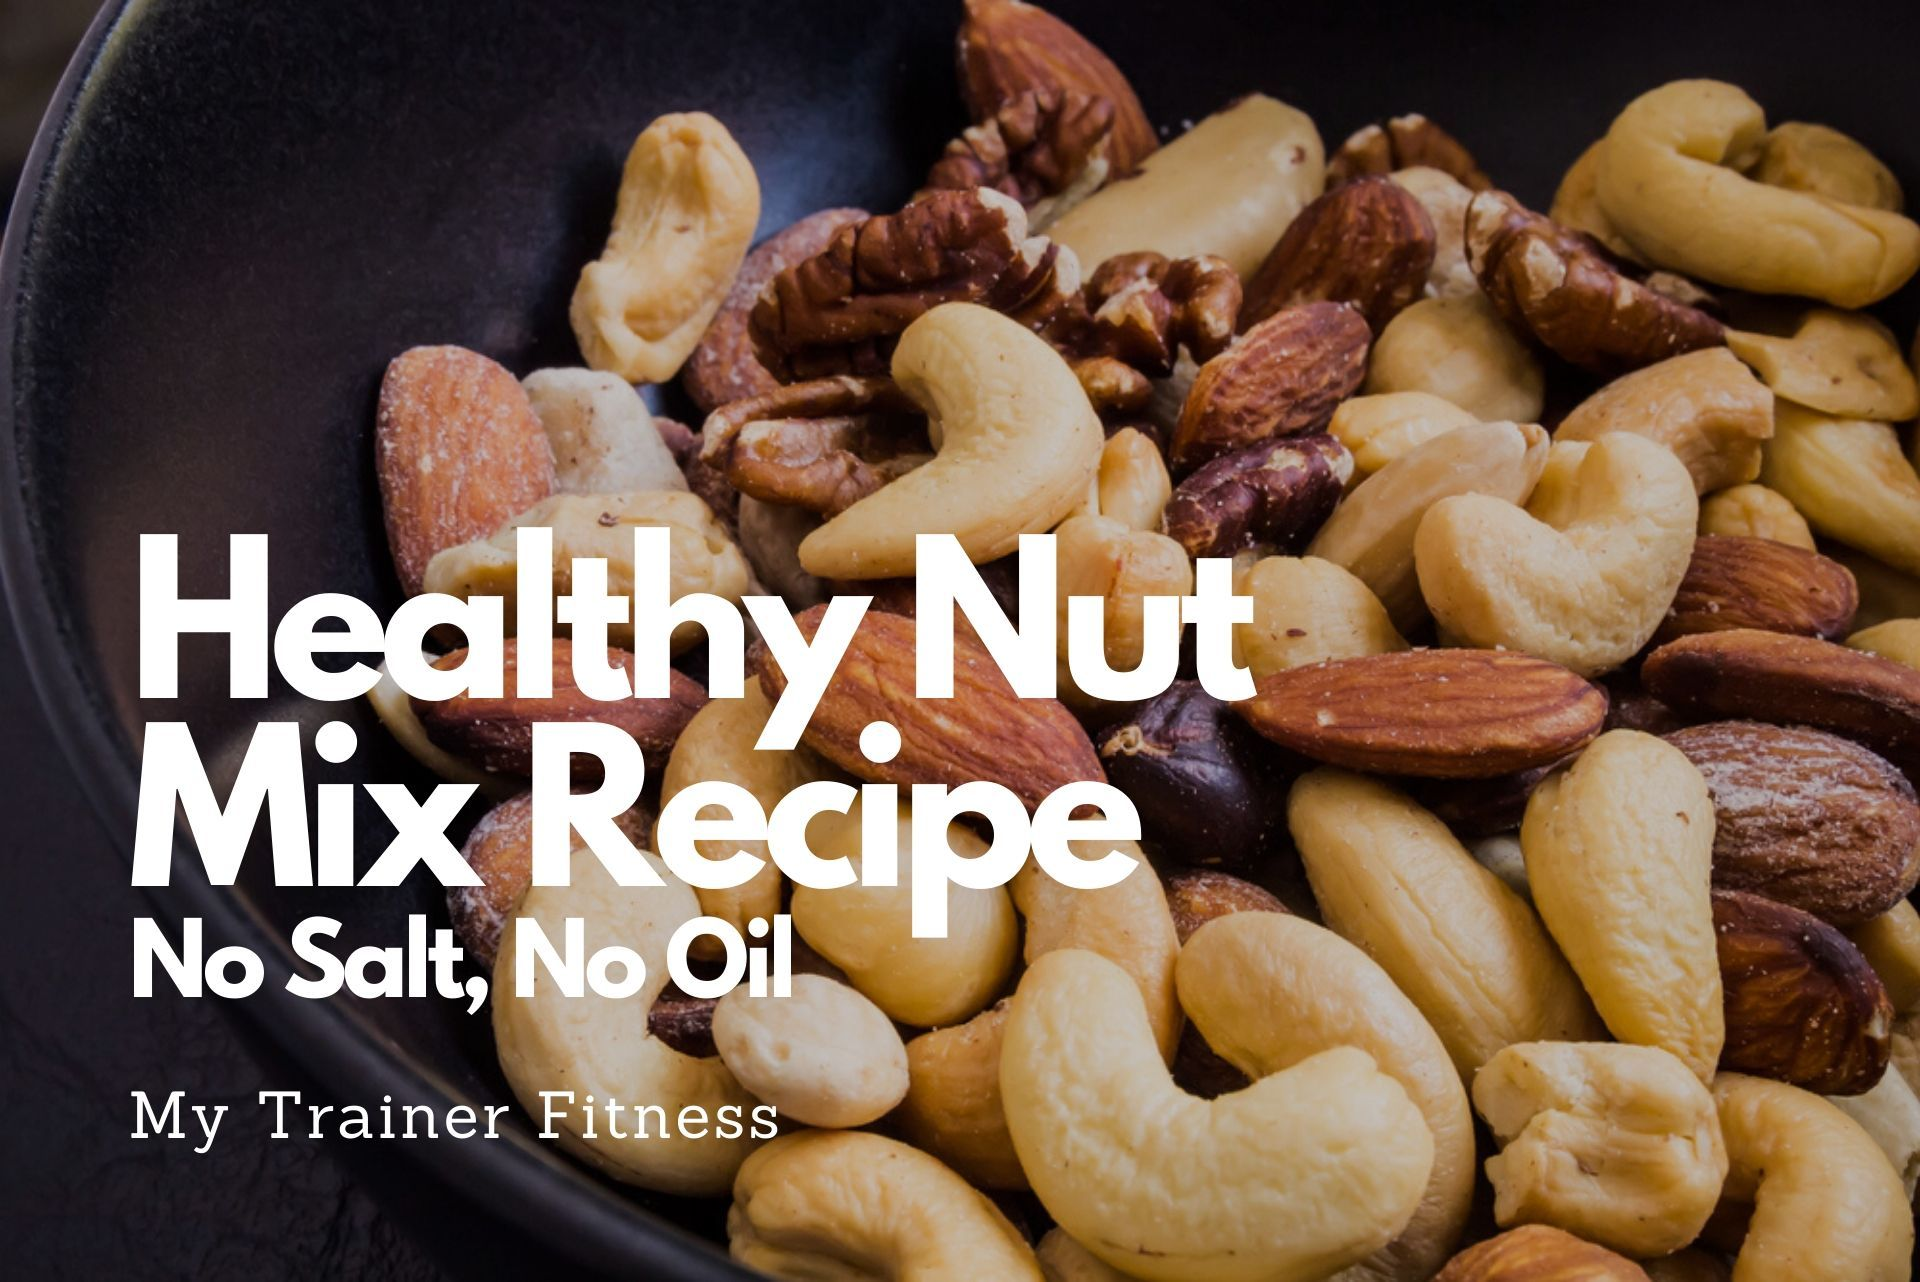 """""""A healthy nut mix recipe is super easy to make and tastes great without all the additives you don't..."""